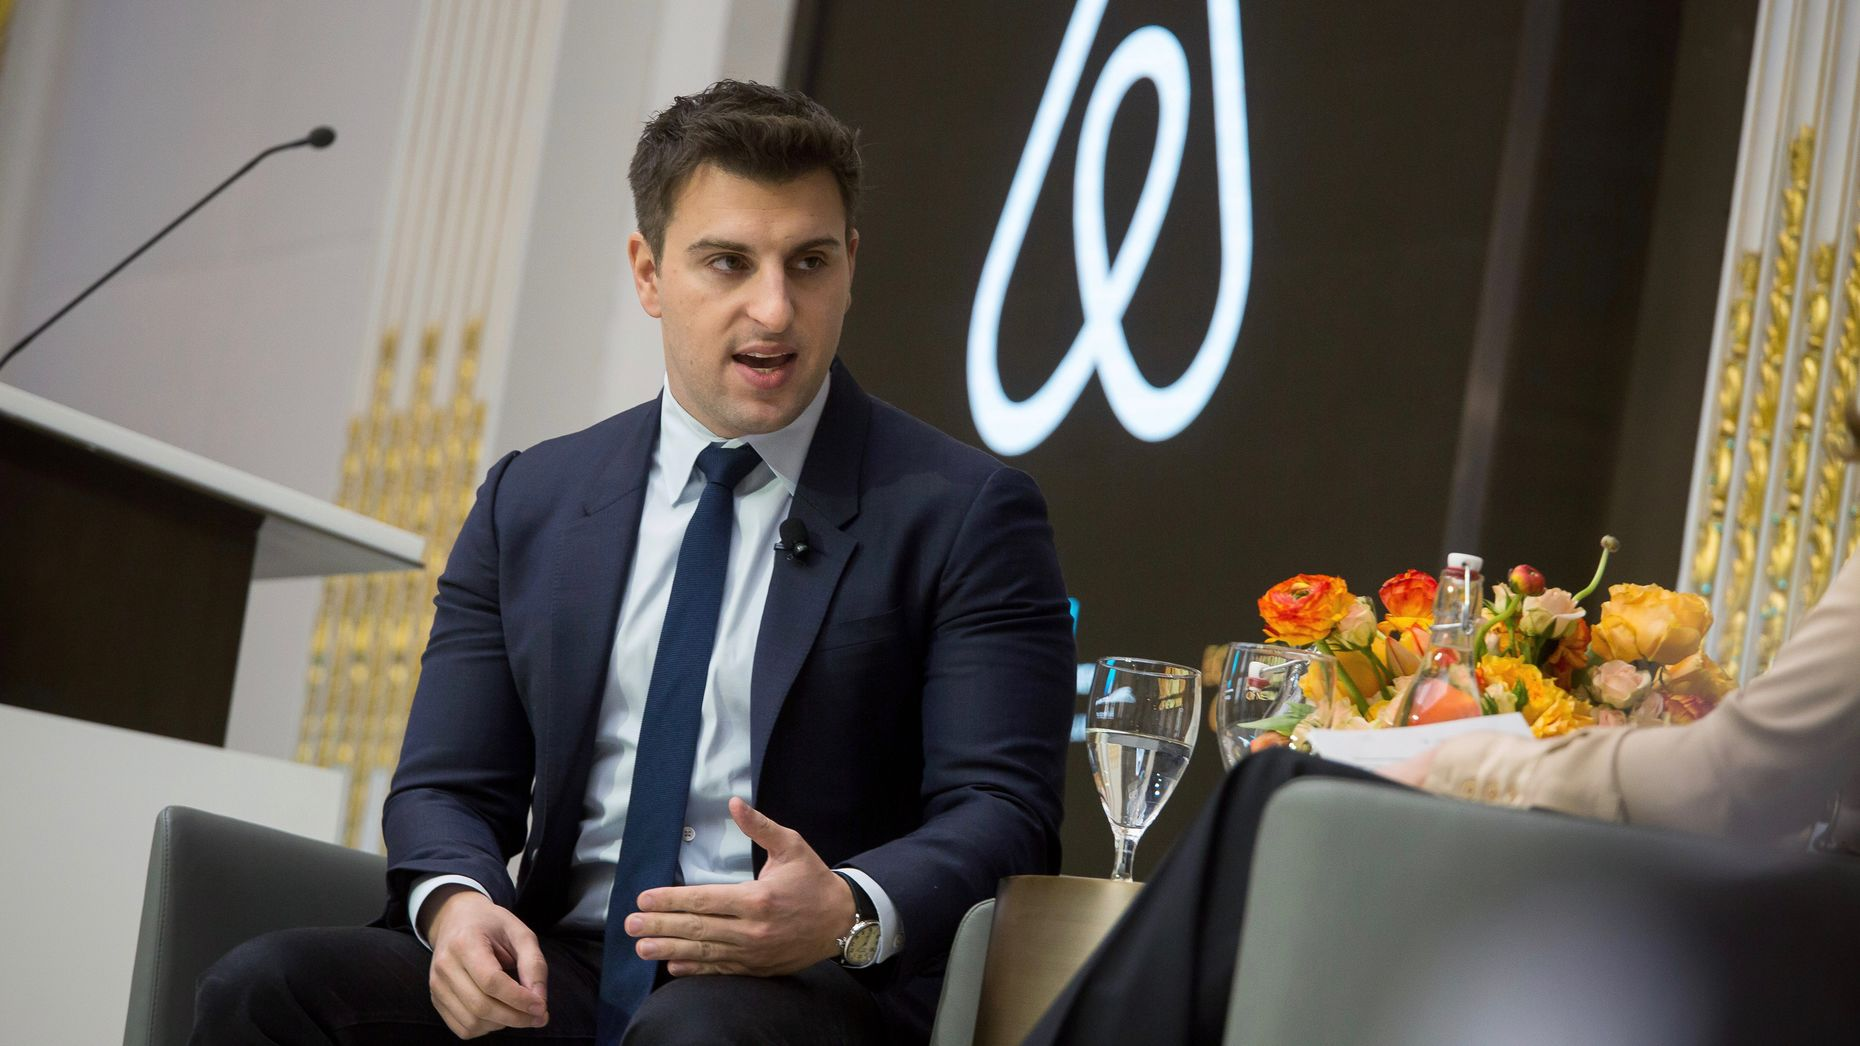 Airbnb CEO Brian Chesky at an Economic Club of New York luncheon in March. Photo by Bloomberg.